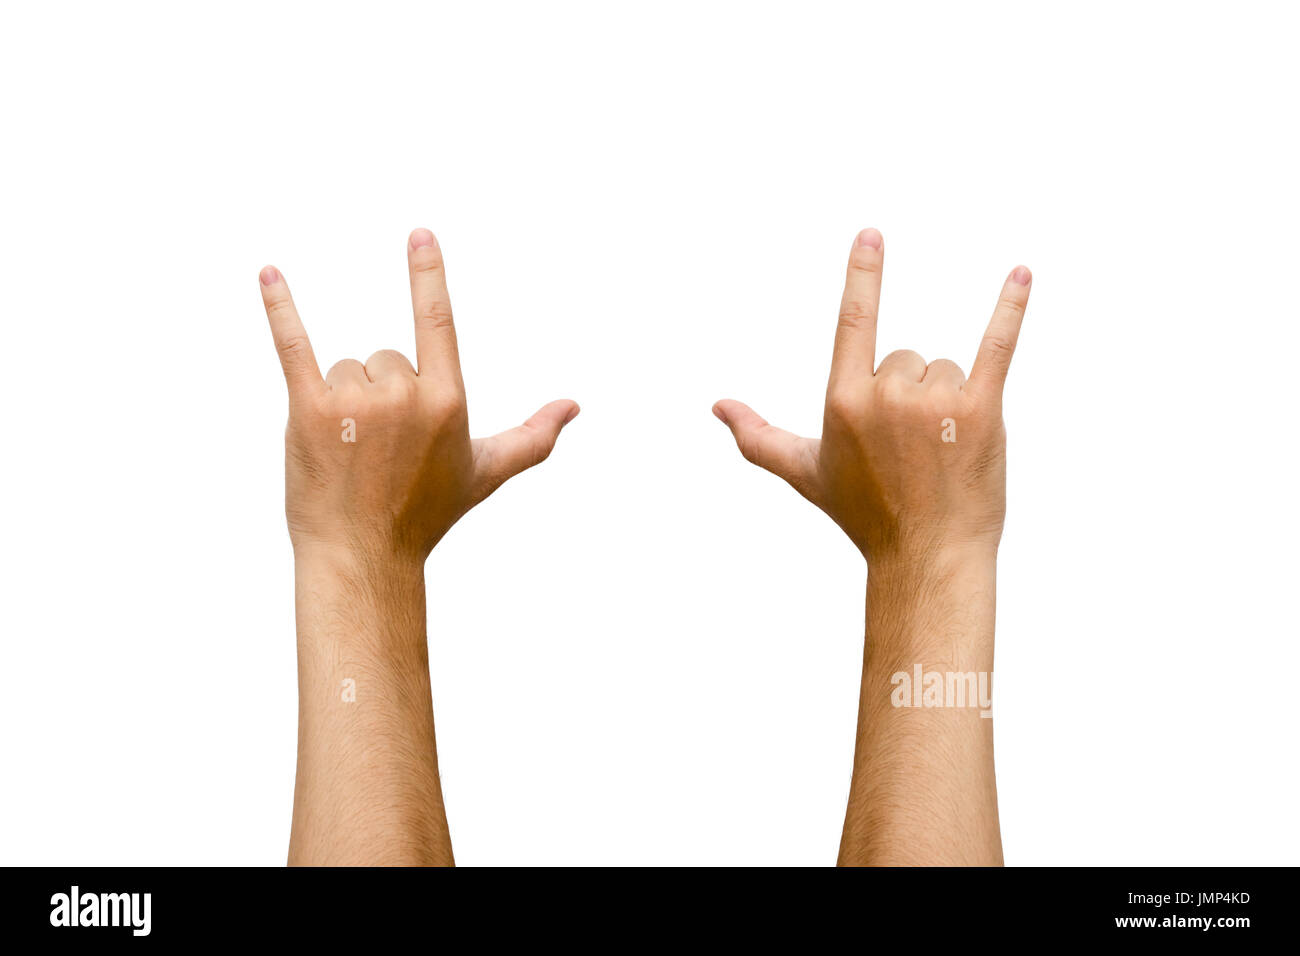 Devil hand sign stock photos devil hand sign stock images alamy i love you hand sign isolated on white background with copy space stock image biocorpaavc Gallery